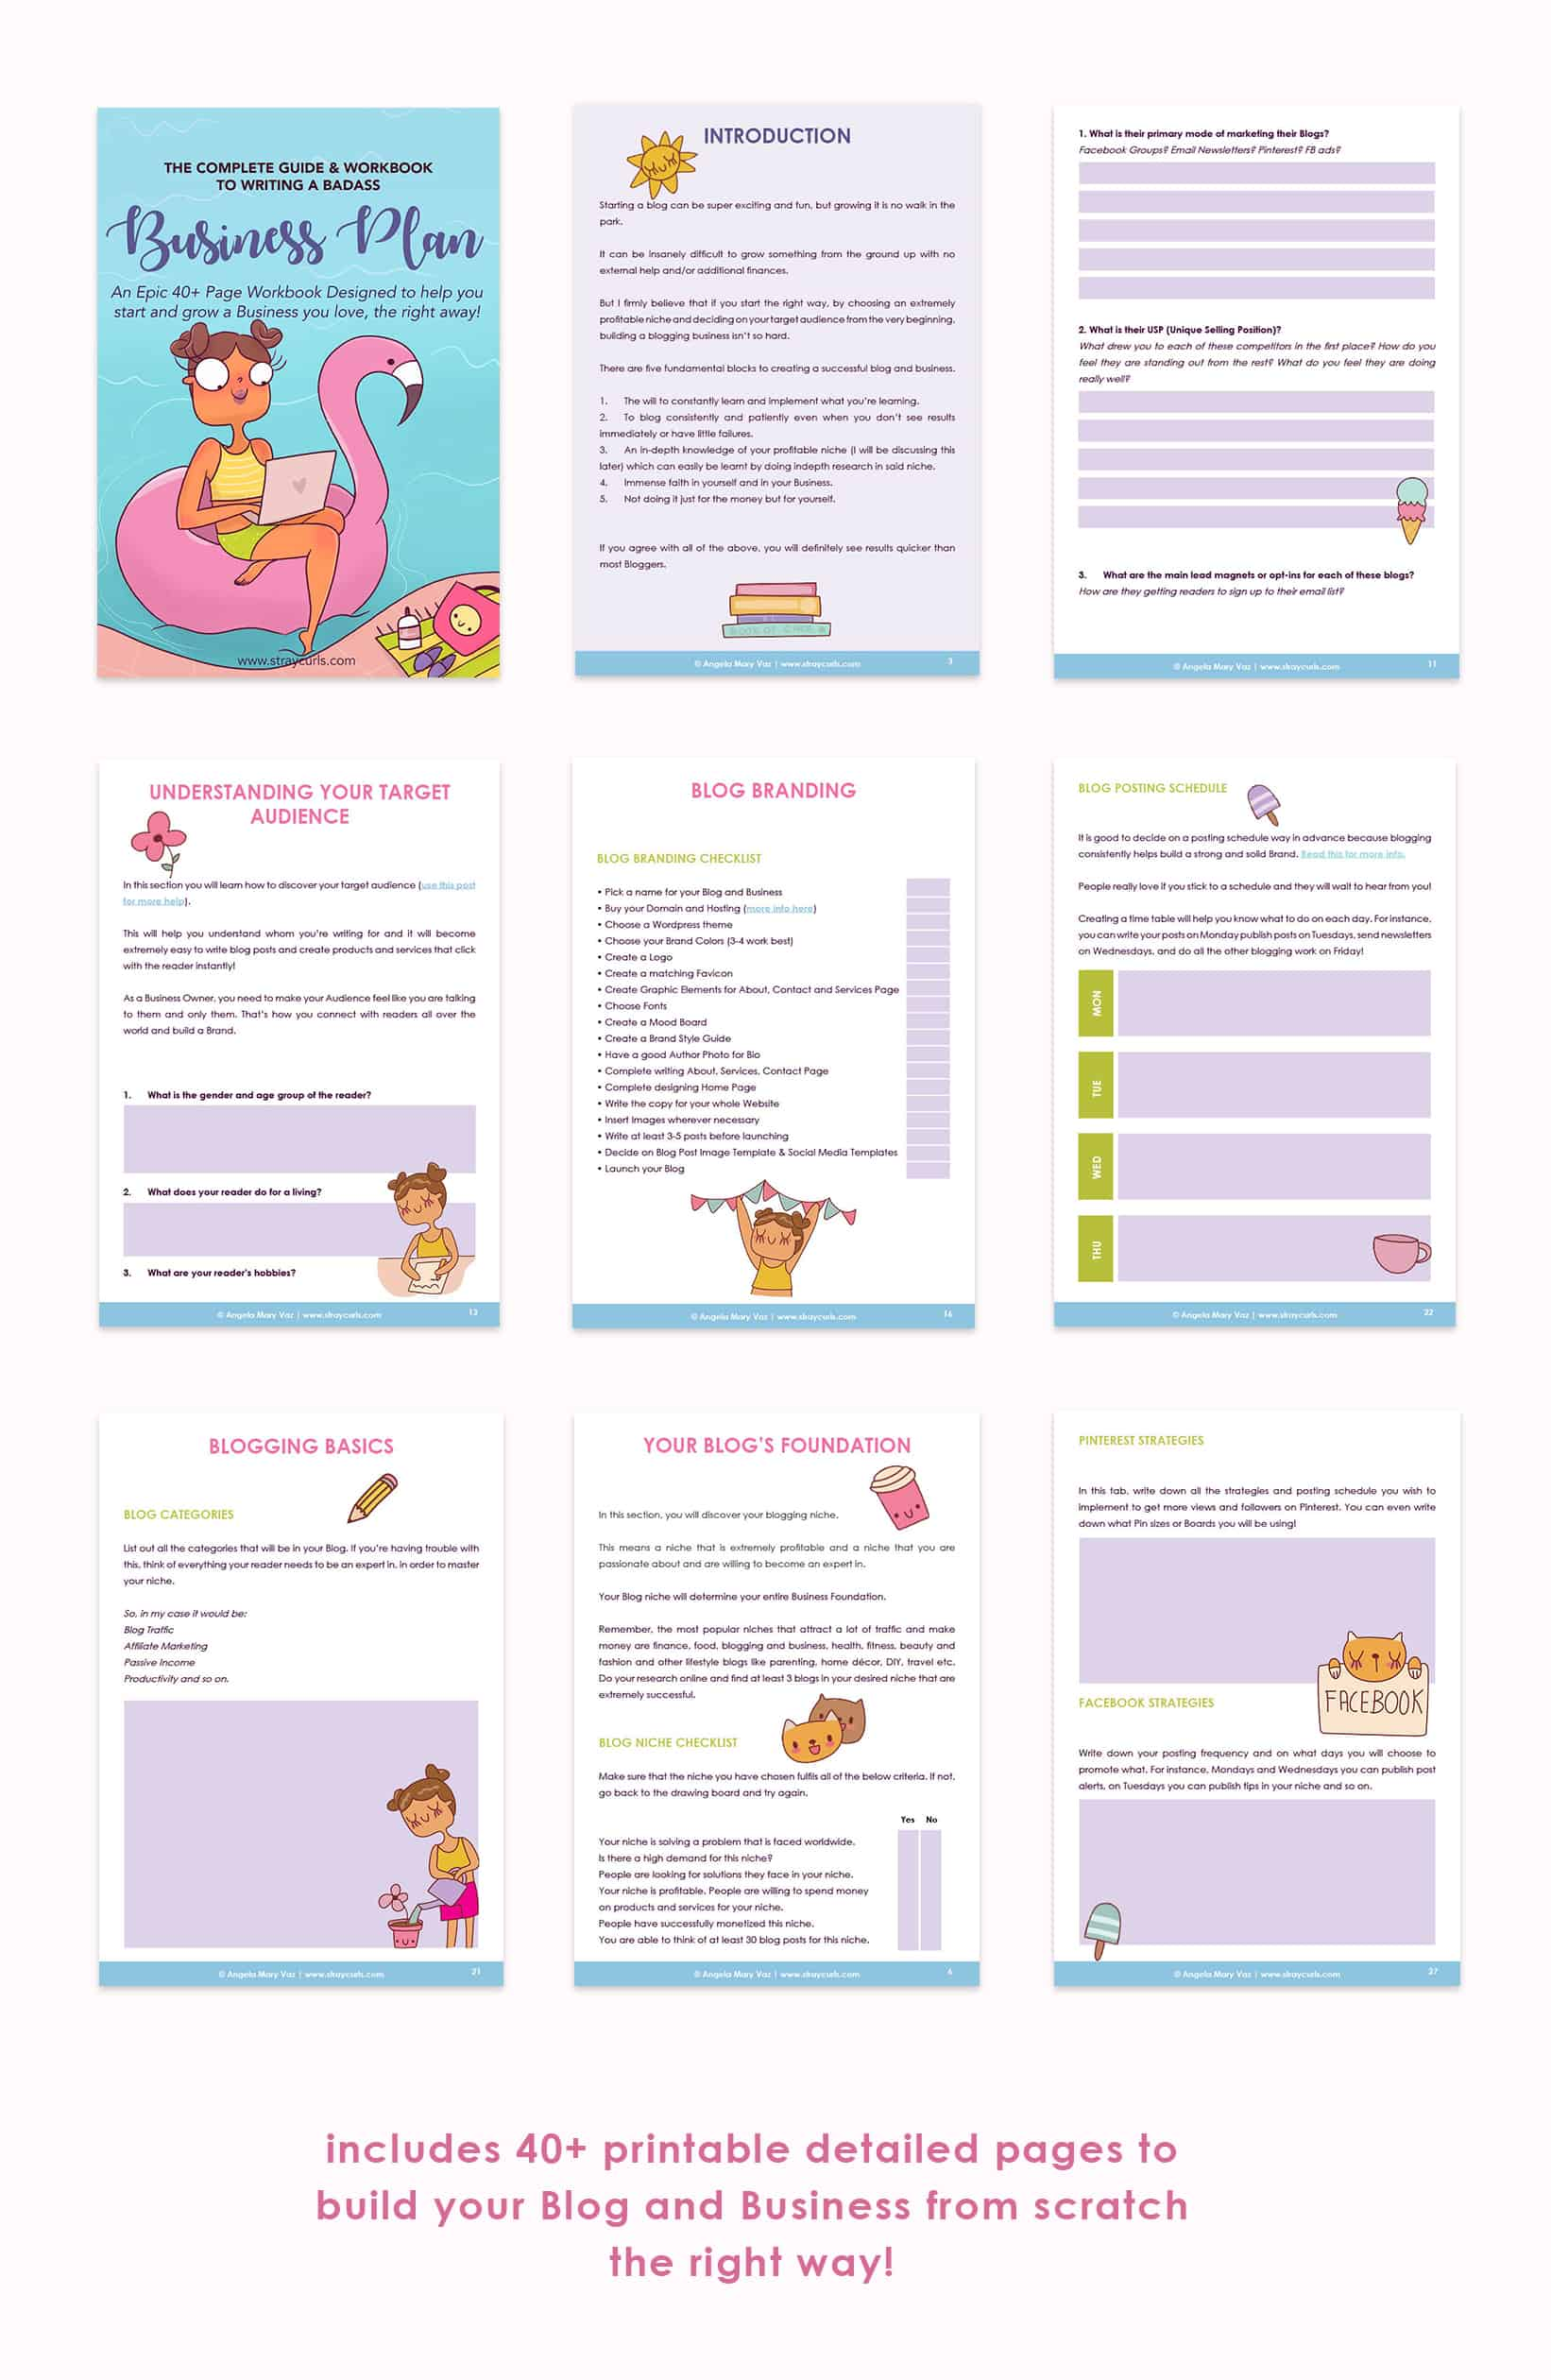 These include pages with cute stickers to help you with your blog brand, plan your social media and email marketing, monetization strategies and so much more!